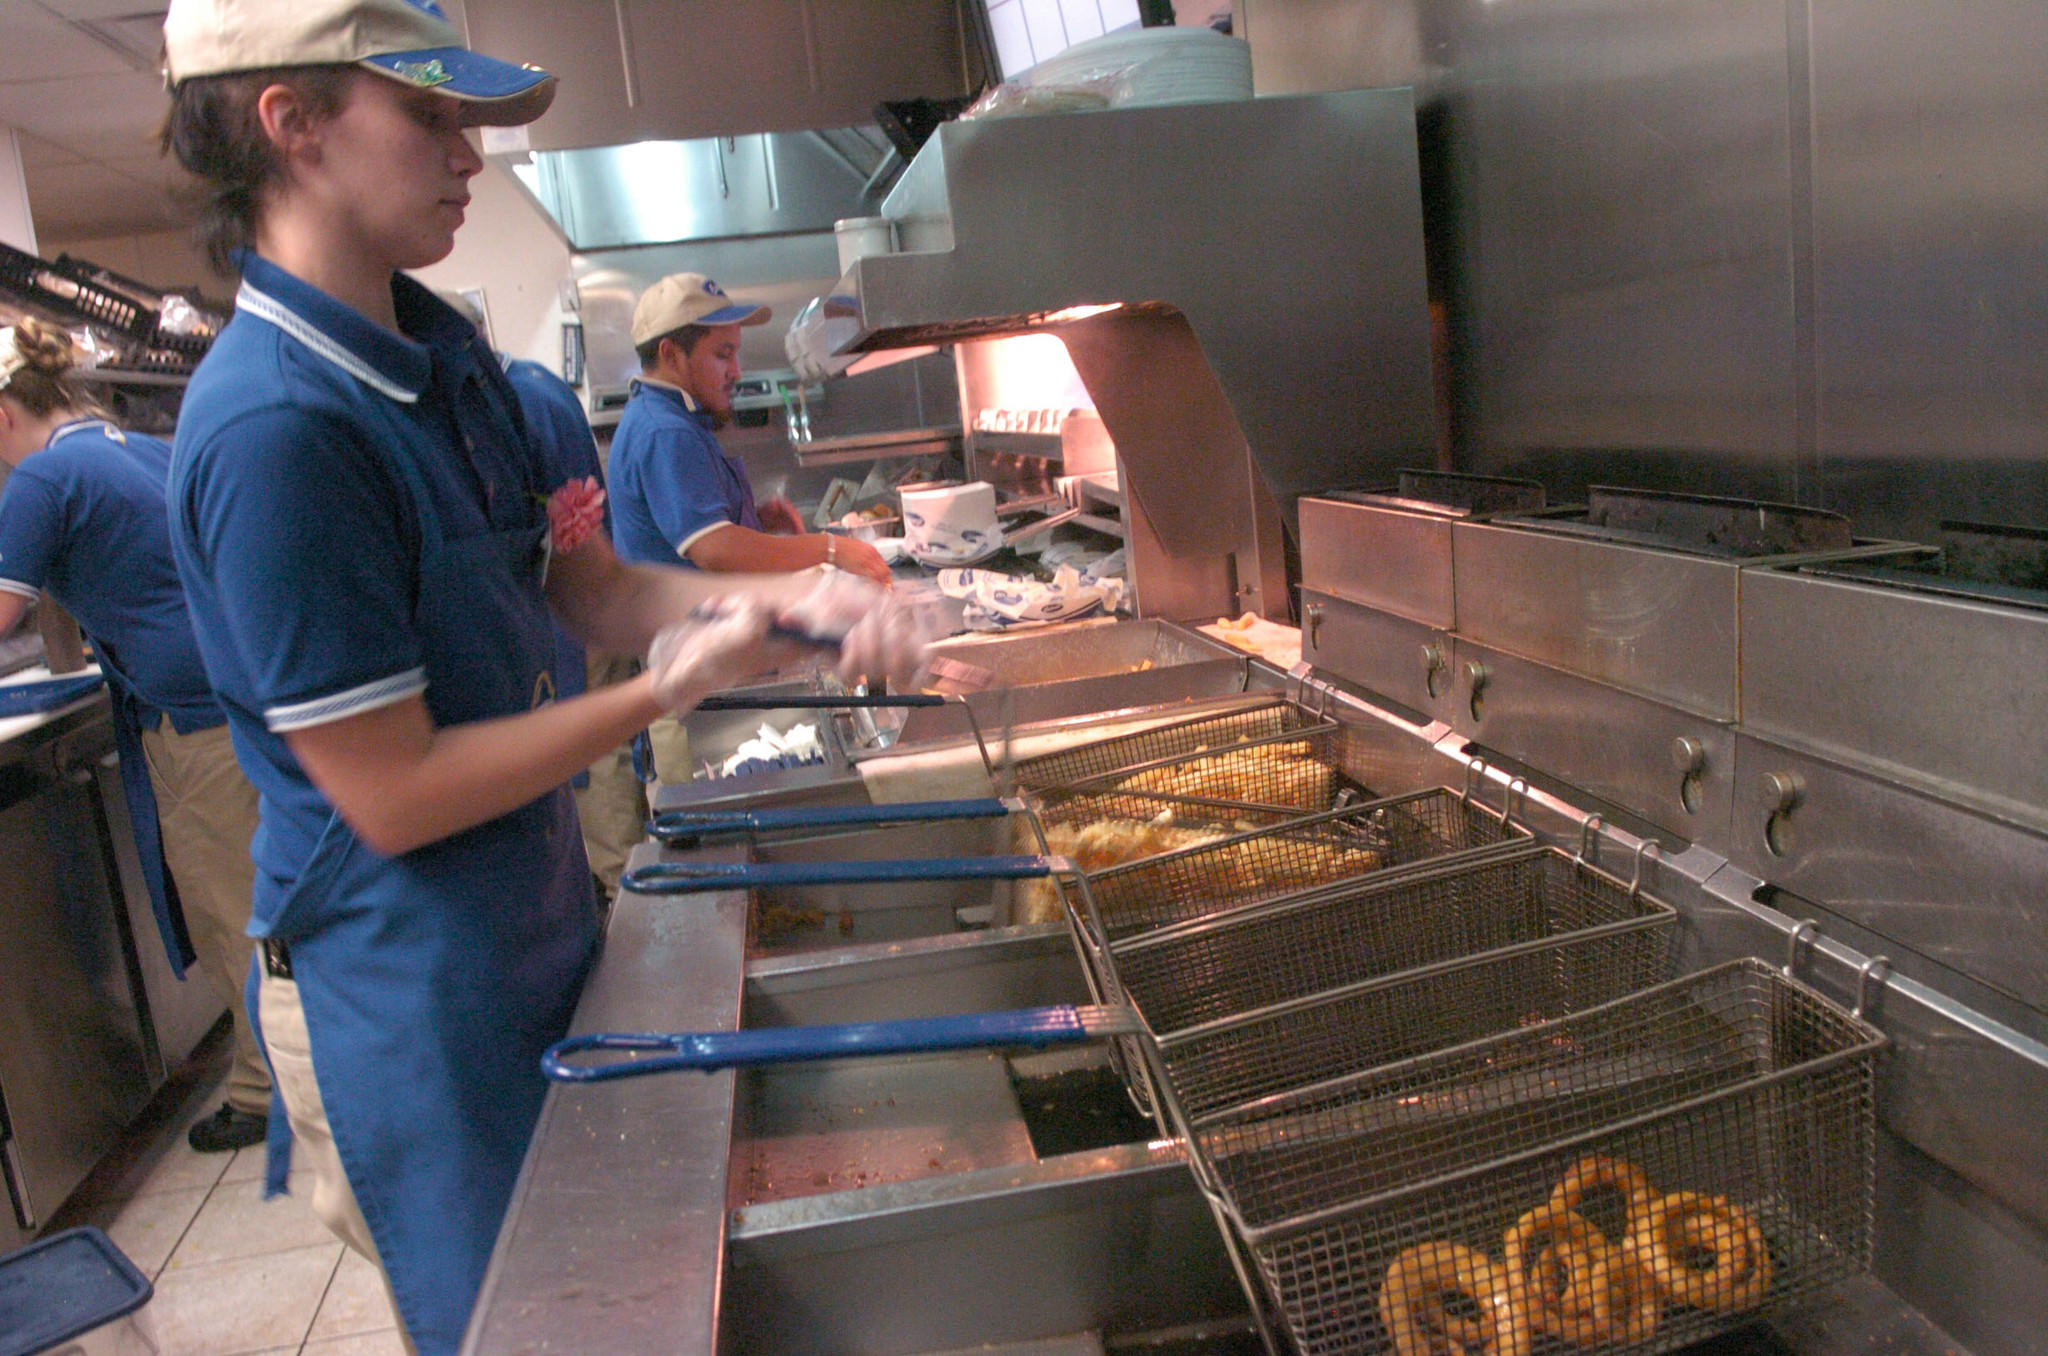 Employee Amy Rogers operates the frying vats at the Culver's franchise in Pleasant Prairie, Wis.